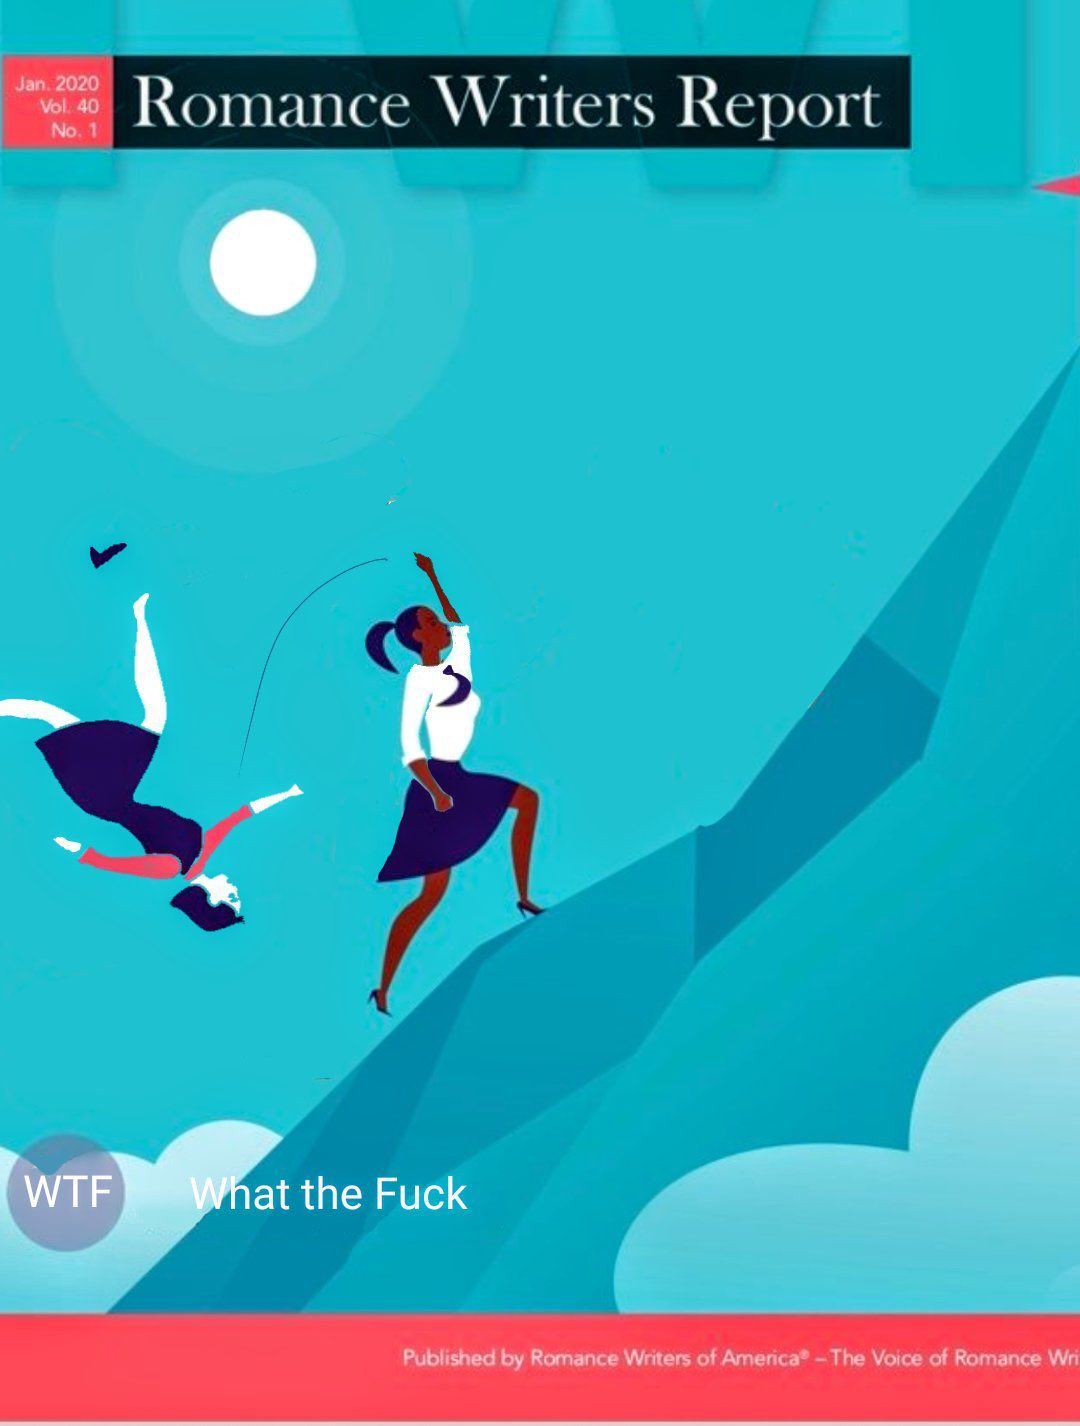 """A photomanip of the previous RWA magazine cover. Instead of reaching out her hand for assistance from the white lady in front of her, the woman of color is defiantly tossing the white woman over her shoulder. The white woman is somersaulting down the mountain, arms akimbo, one shoe flying into the air. The cover text has been changed to include a title: """"What the Fuck."""""""